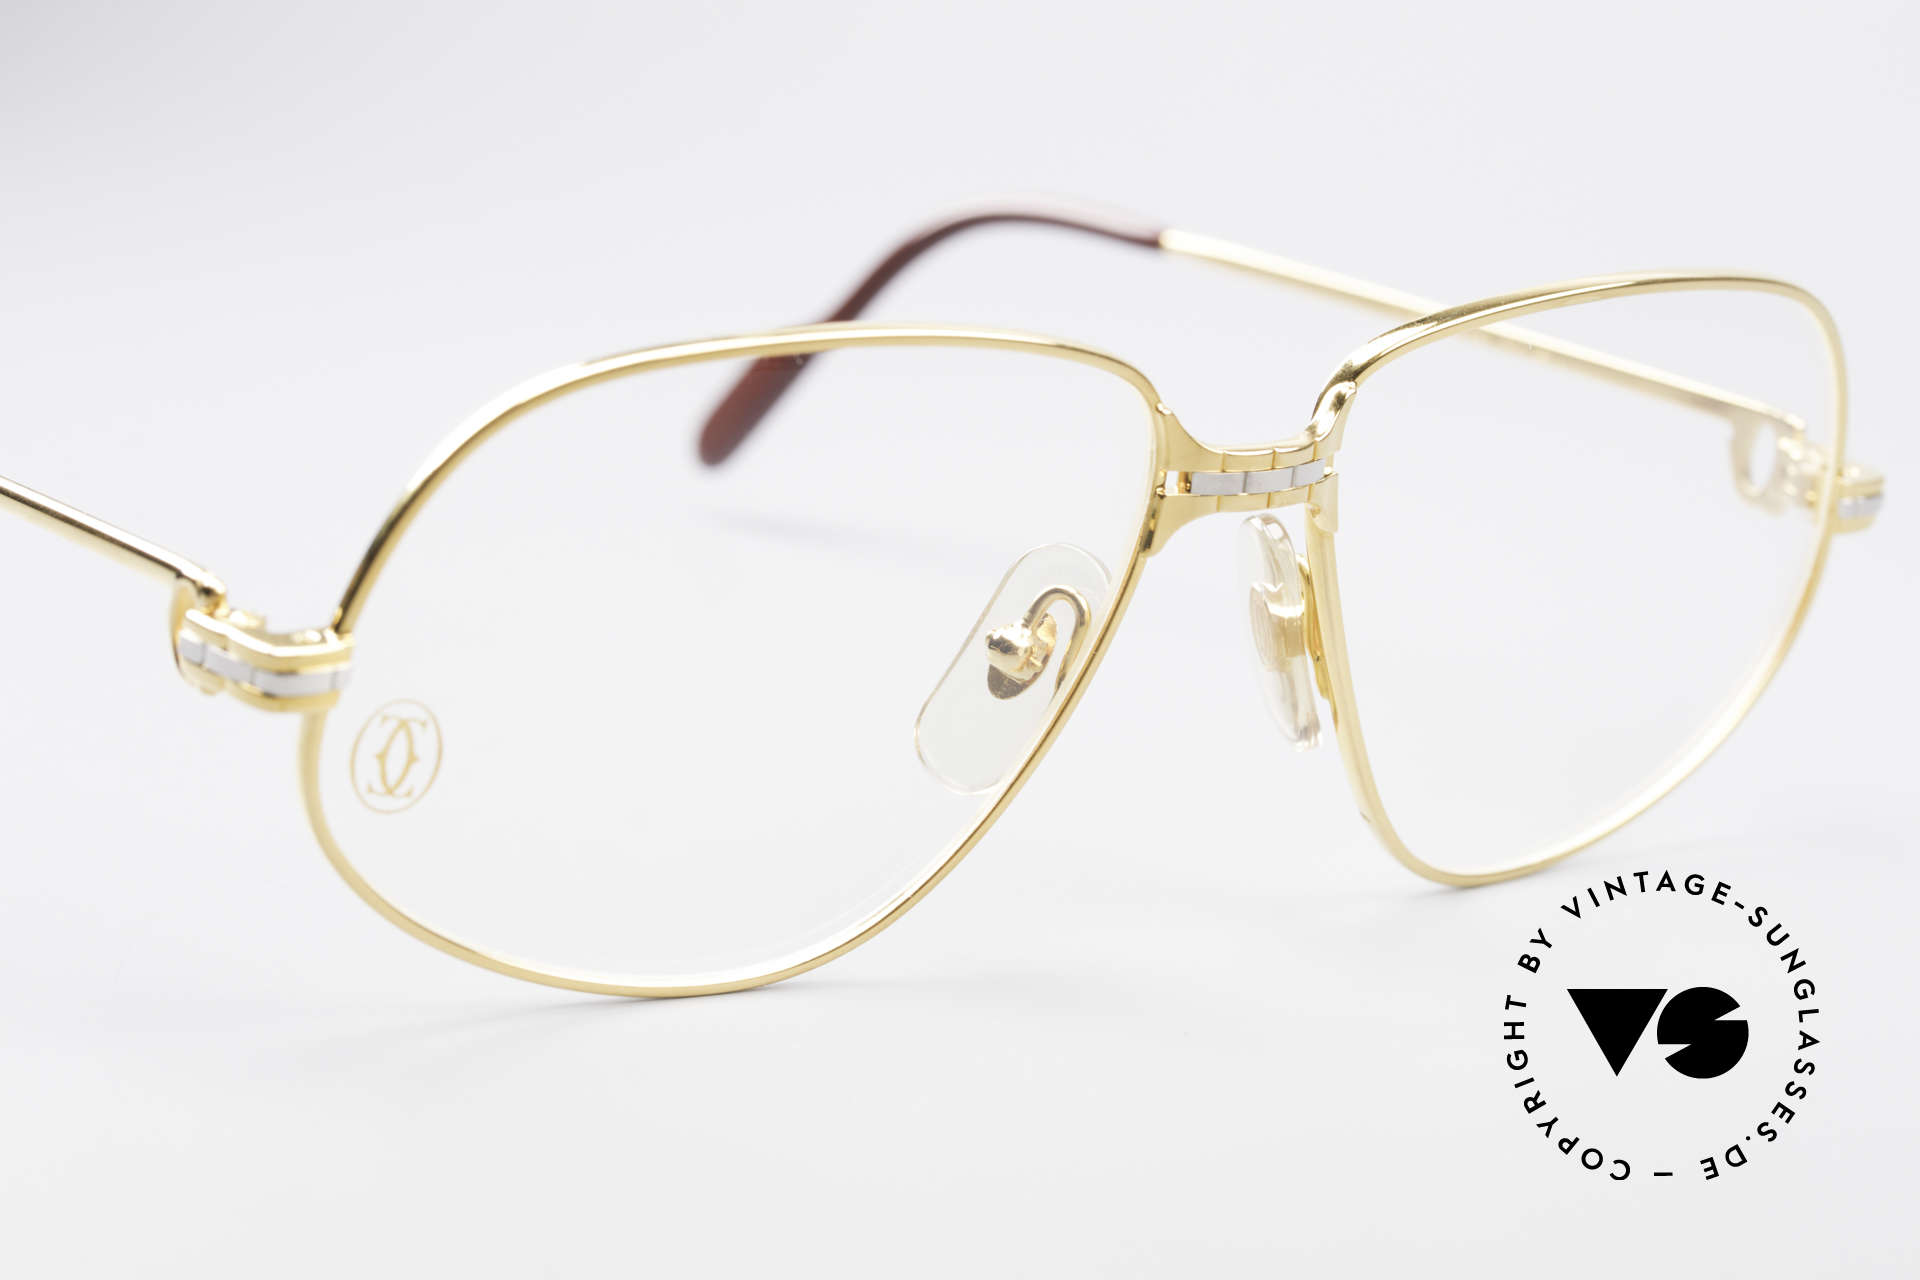 Cartier Panthere G.M. - M 80's Luxury Vintage Eyeglasses, 22ct gold-plated finish (like all vintage Cartier originals), Made for Men